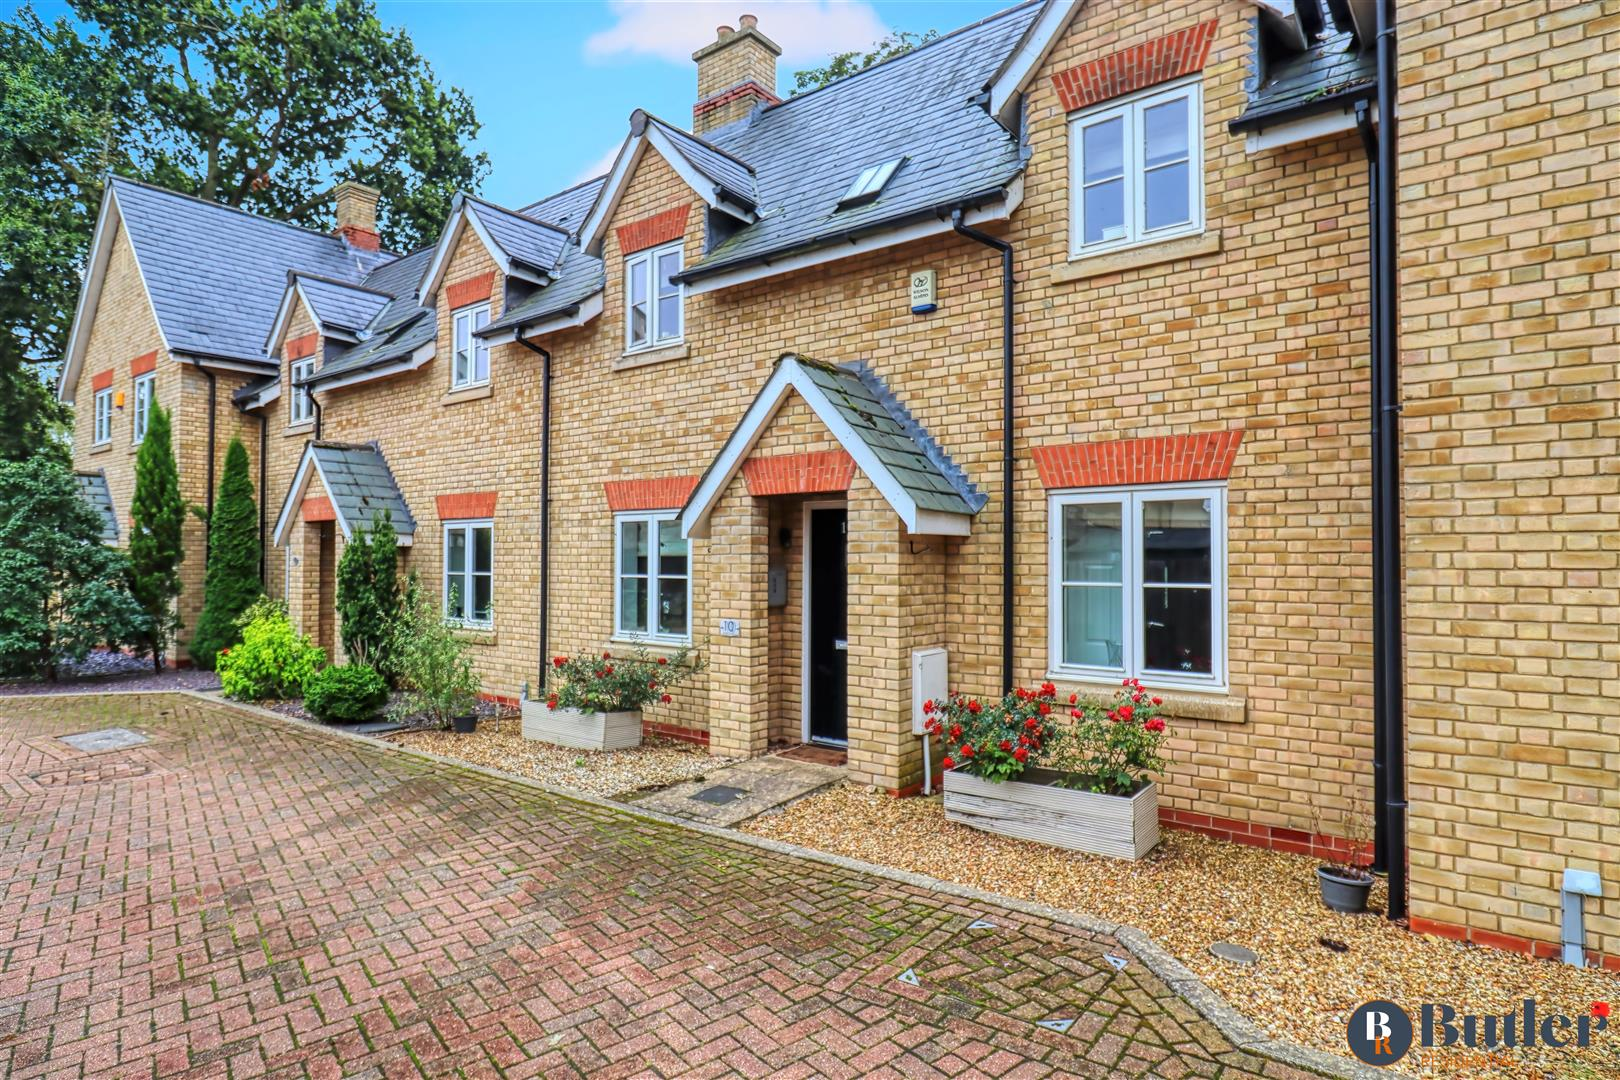 3 bed terraced house for sale in Stuart Court, Sandy, SG19